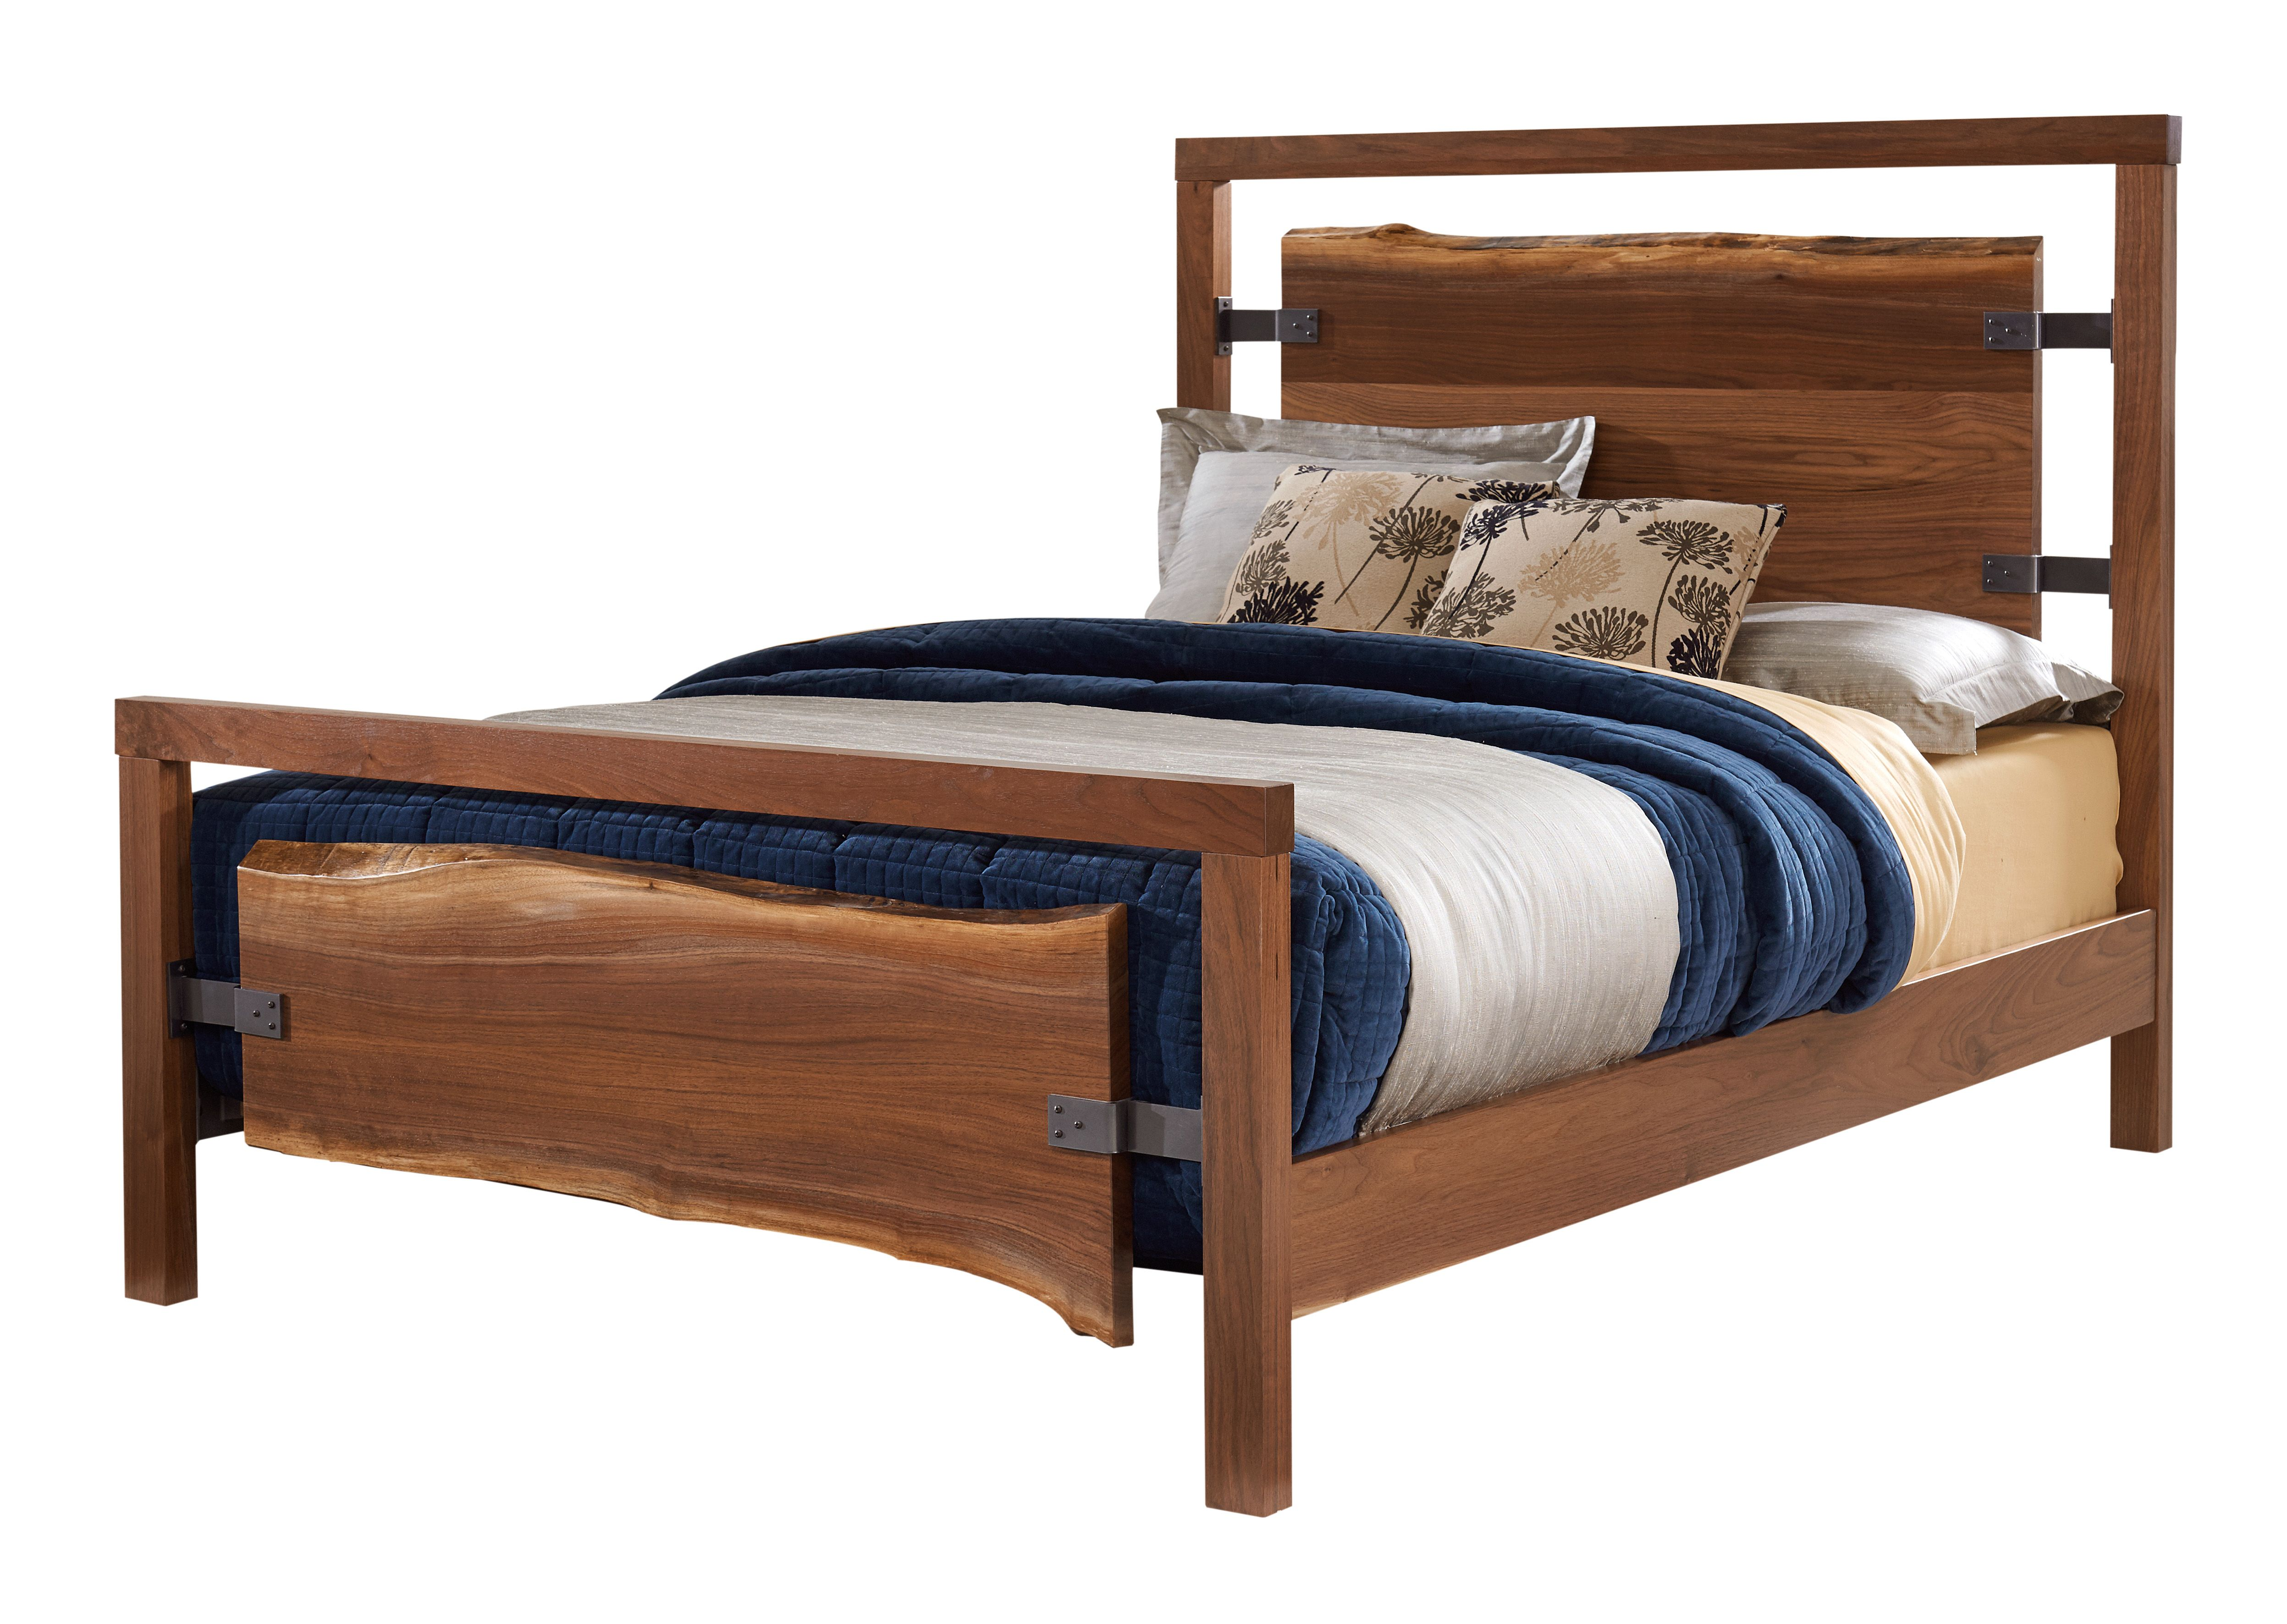 Wood N Choices Live Edge Bed Bedroom Furniture Bed